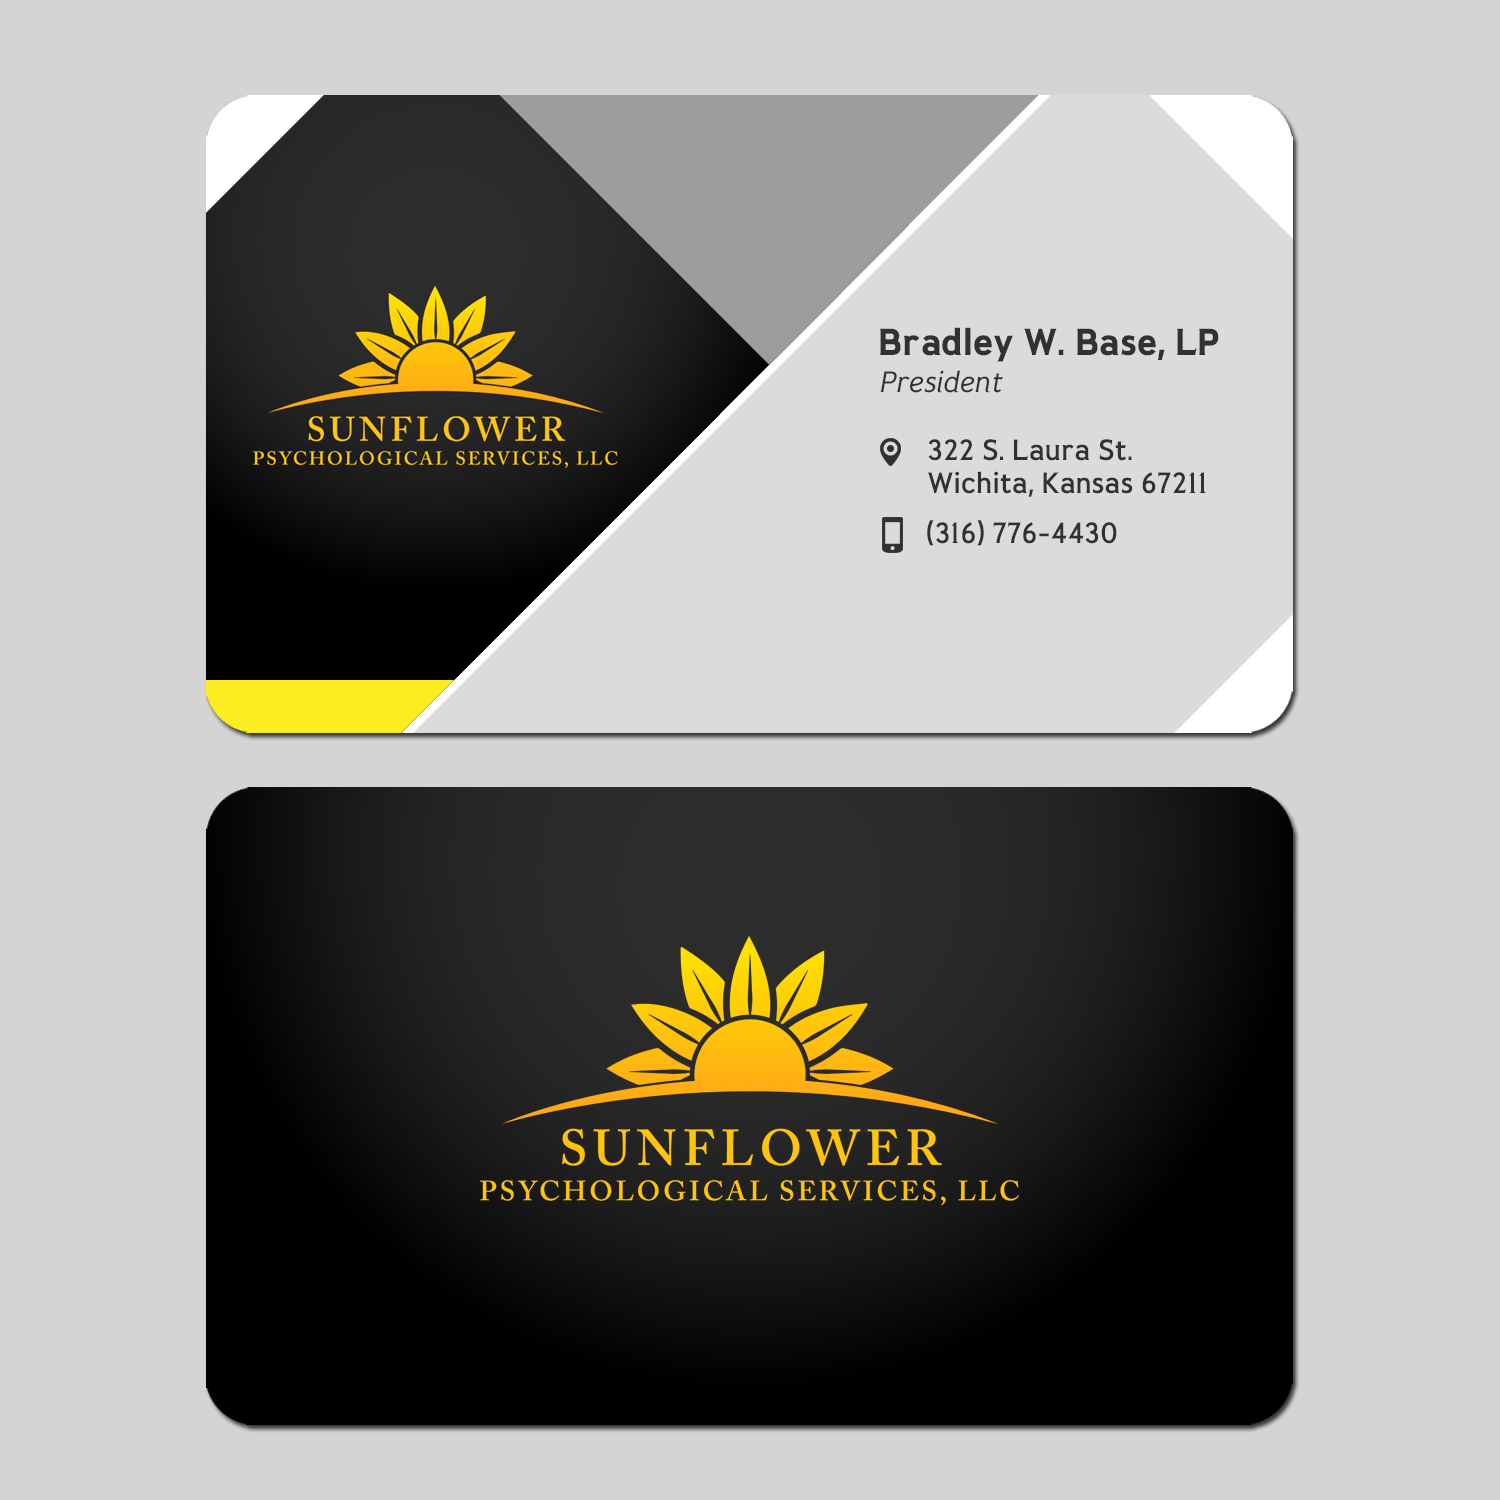 business card design by prasanth jay for sunflower psychological services llc design 15240481